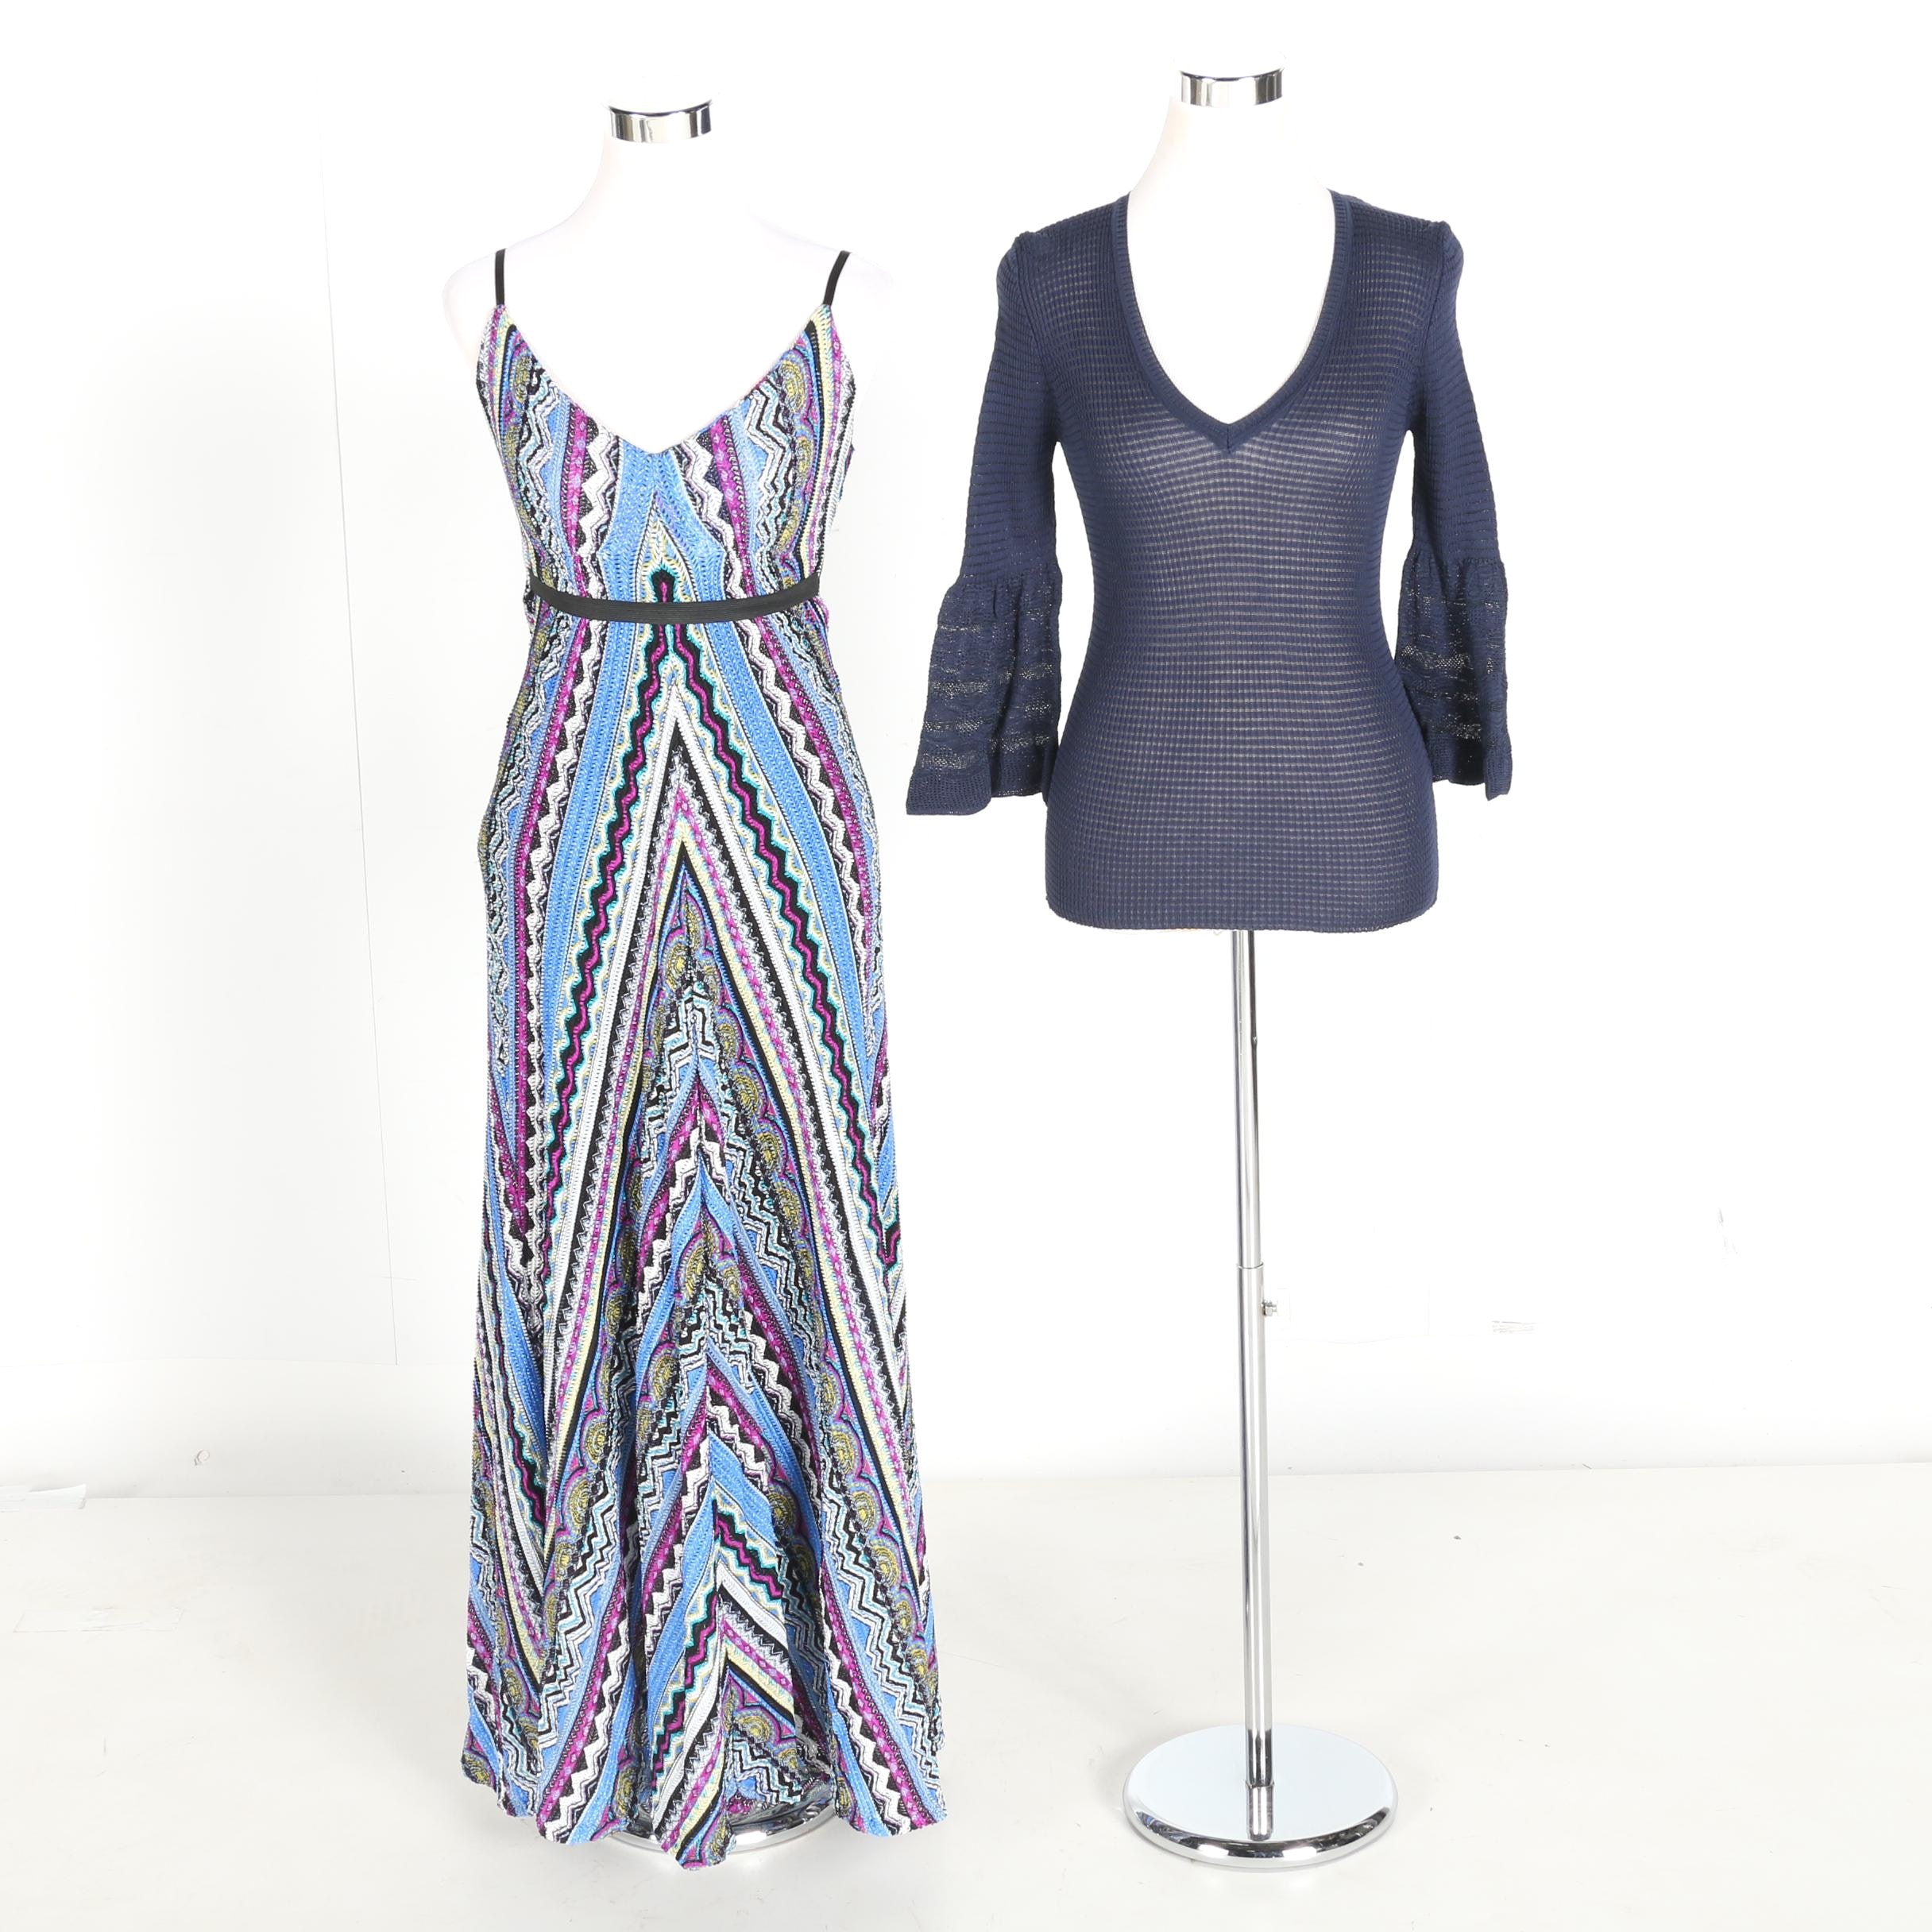 Assorted Women's Clothing Including Missoni